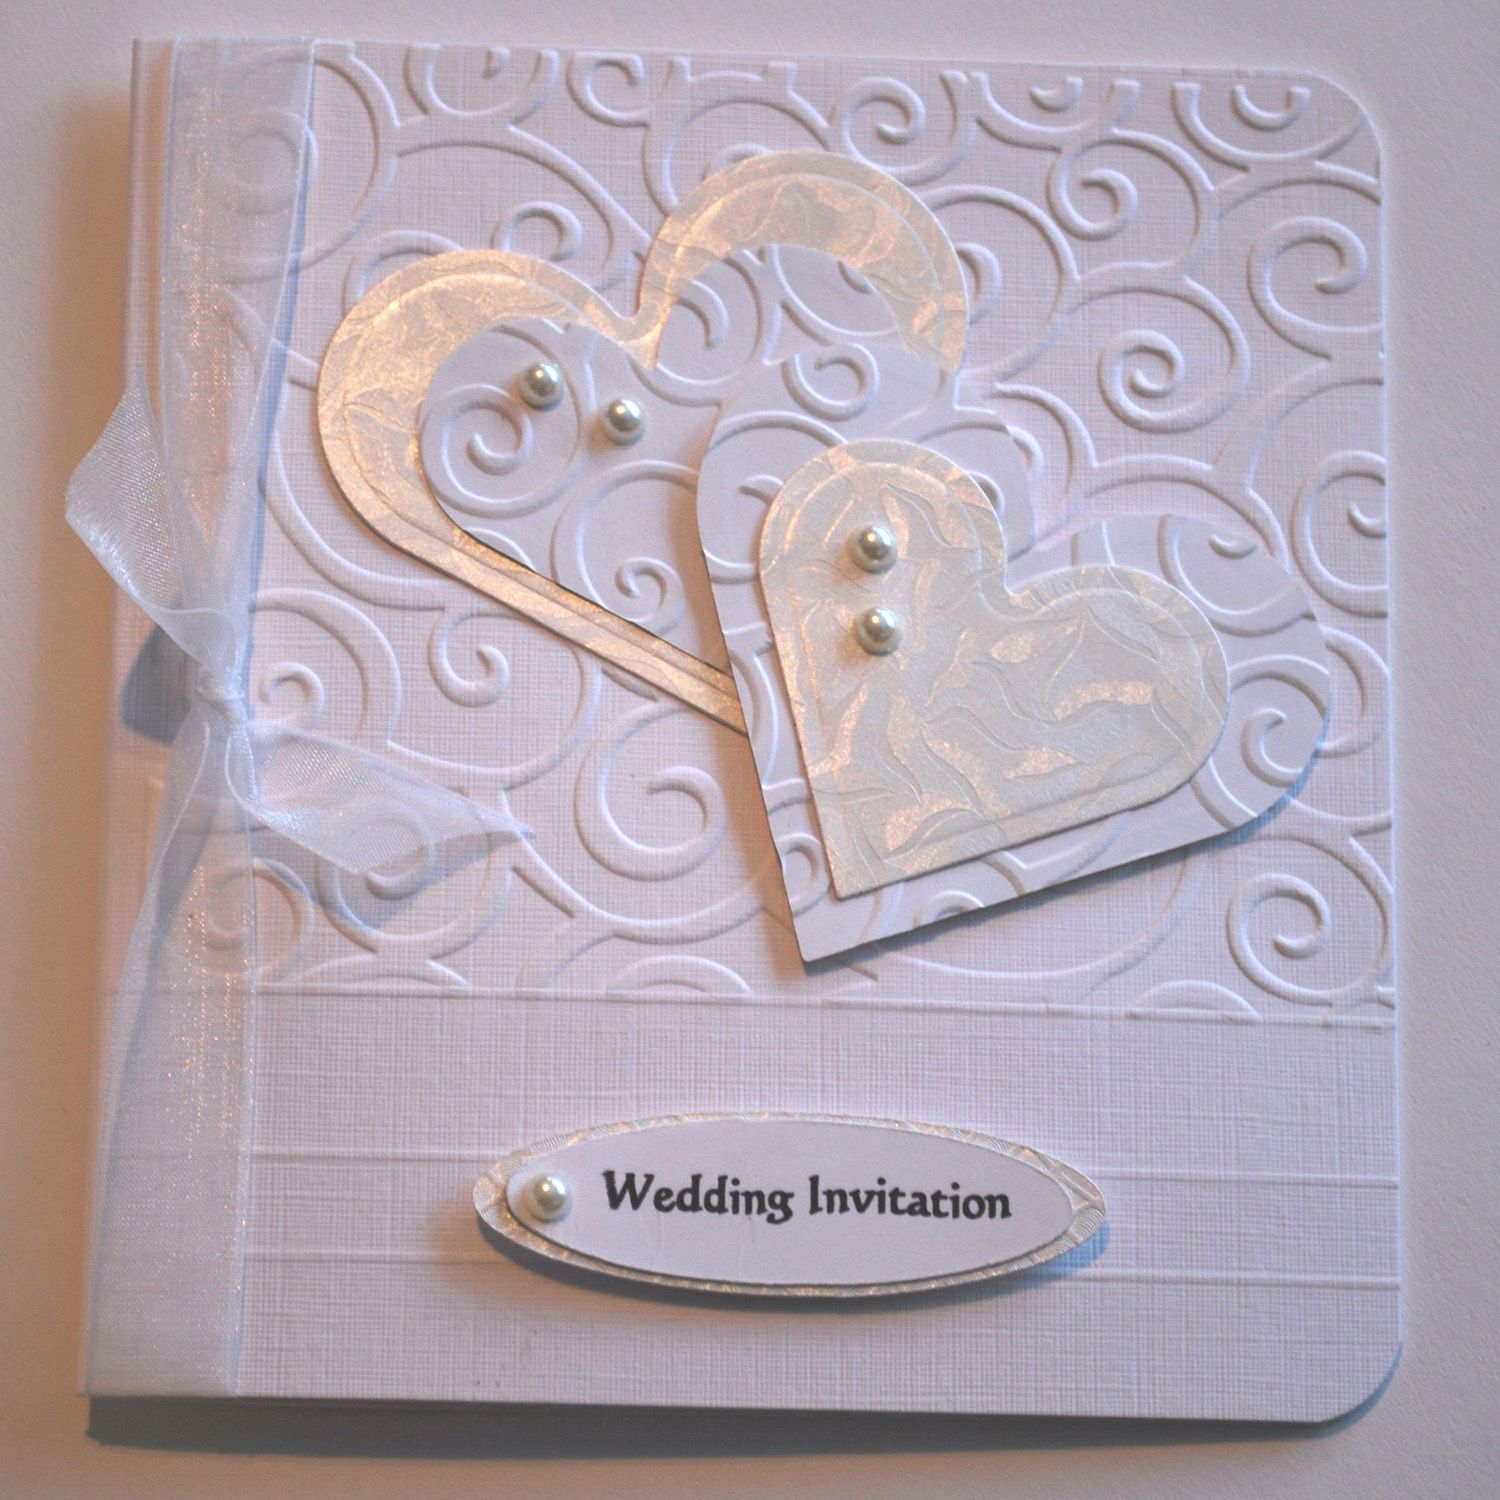 Cuttlebug Cards The Wedding Invitation Card And Golden Heart Uses